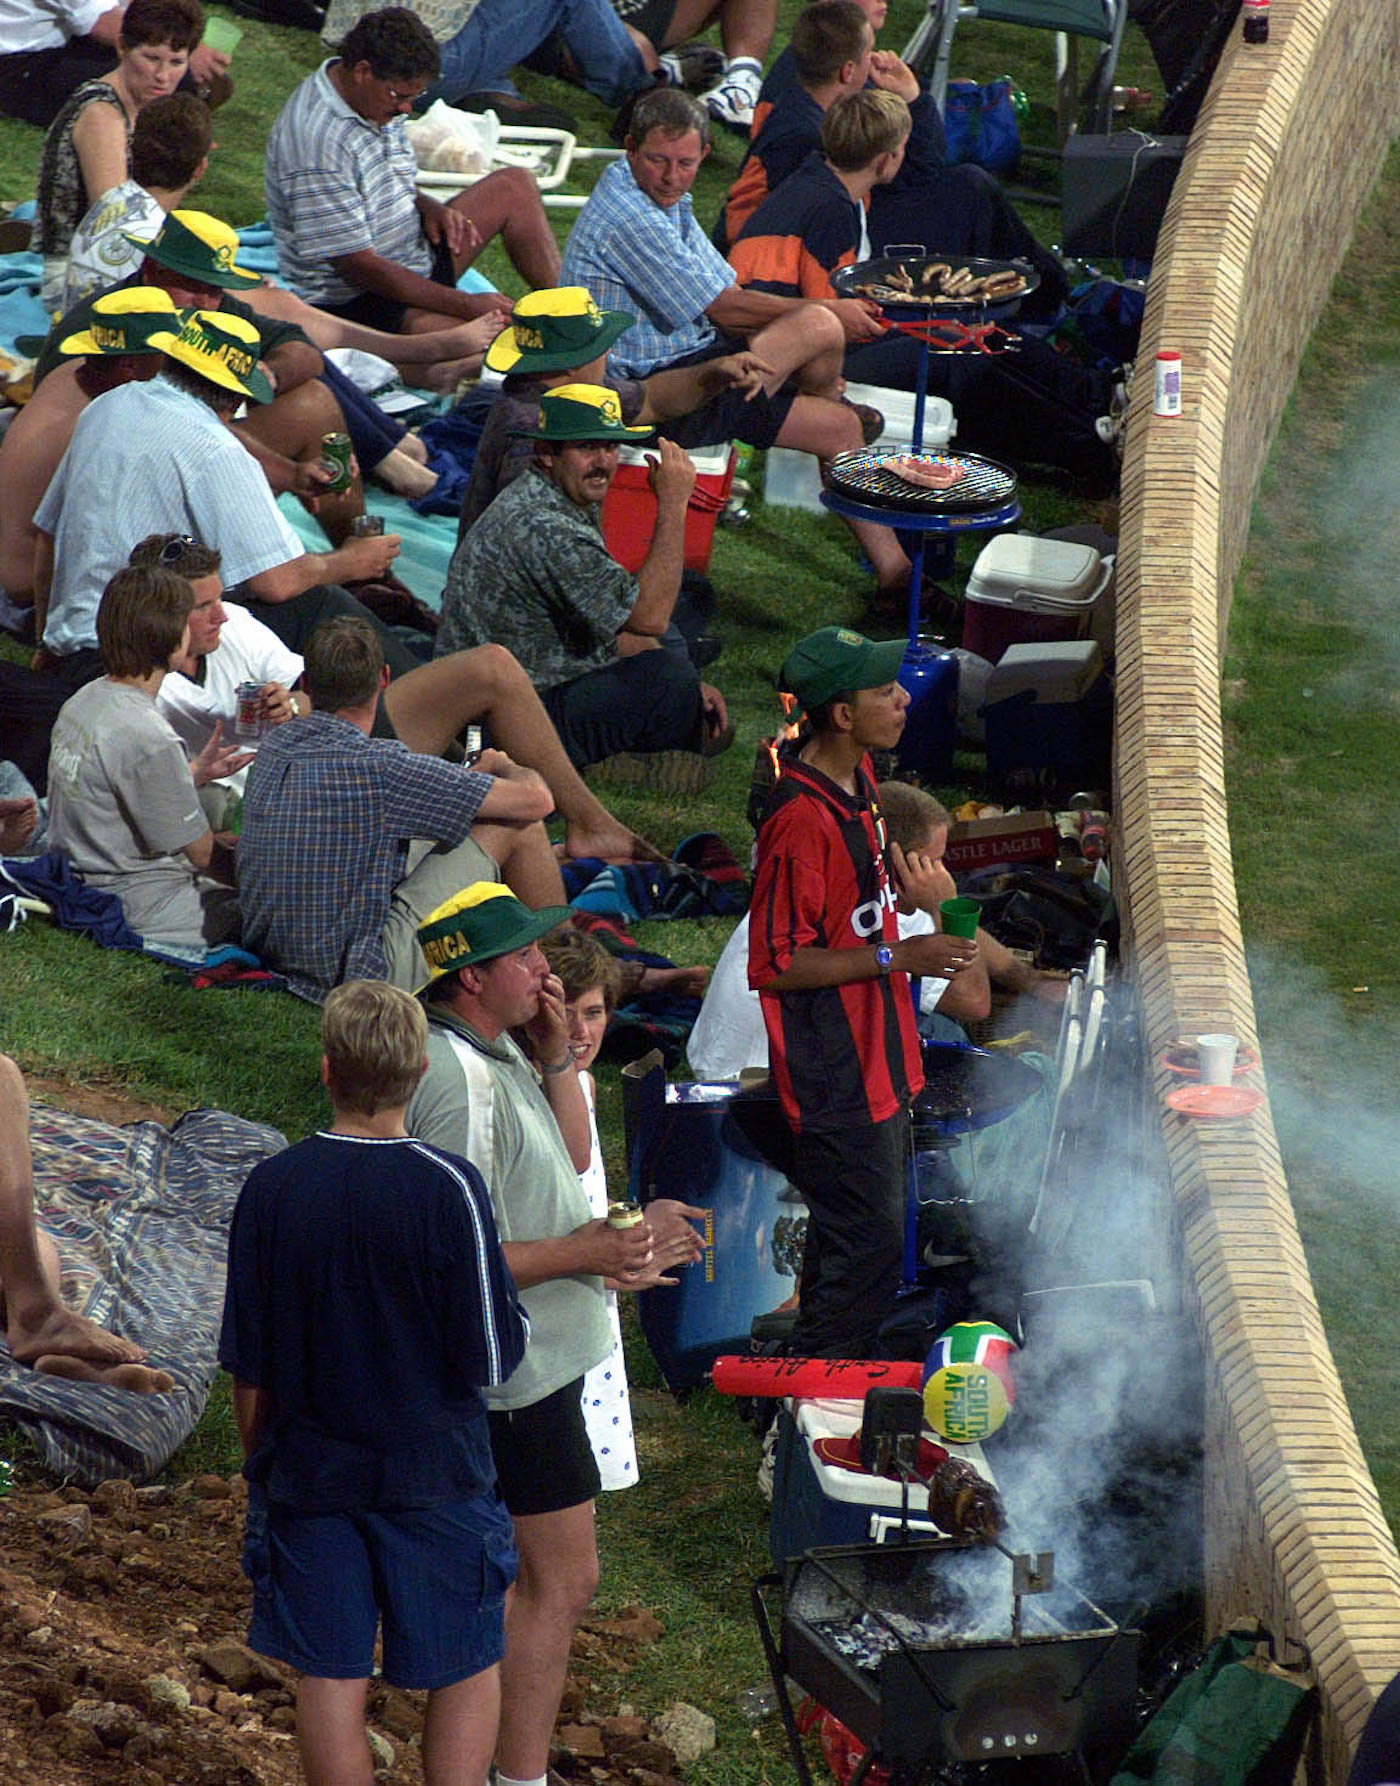 All that you can't leave behind: South African expats are recreating braai culture - an indispensable part of sport, and life - in England as a reminder of home